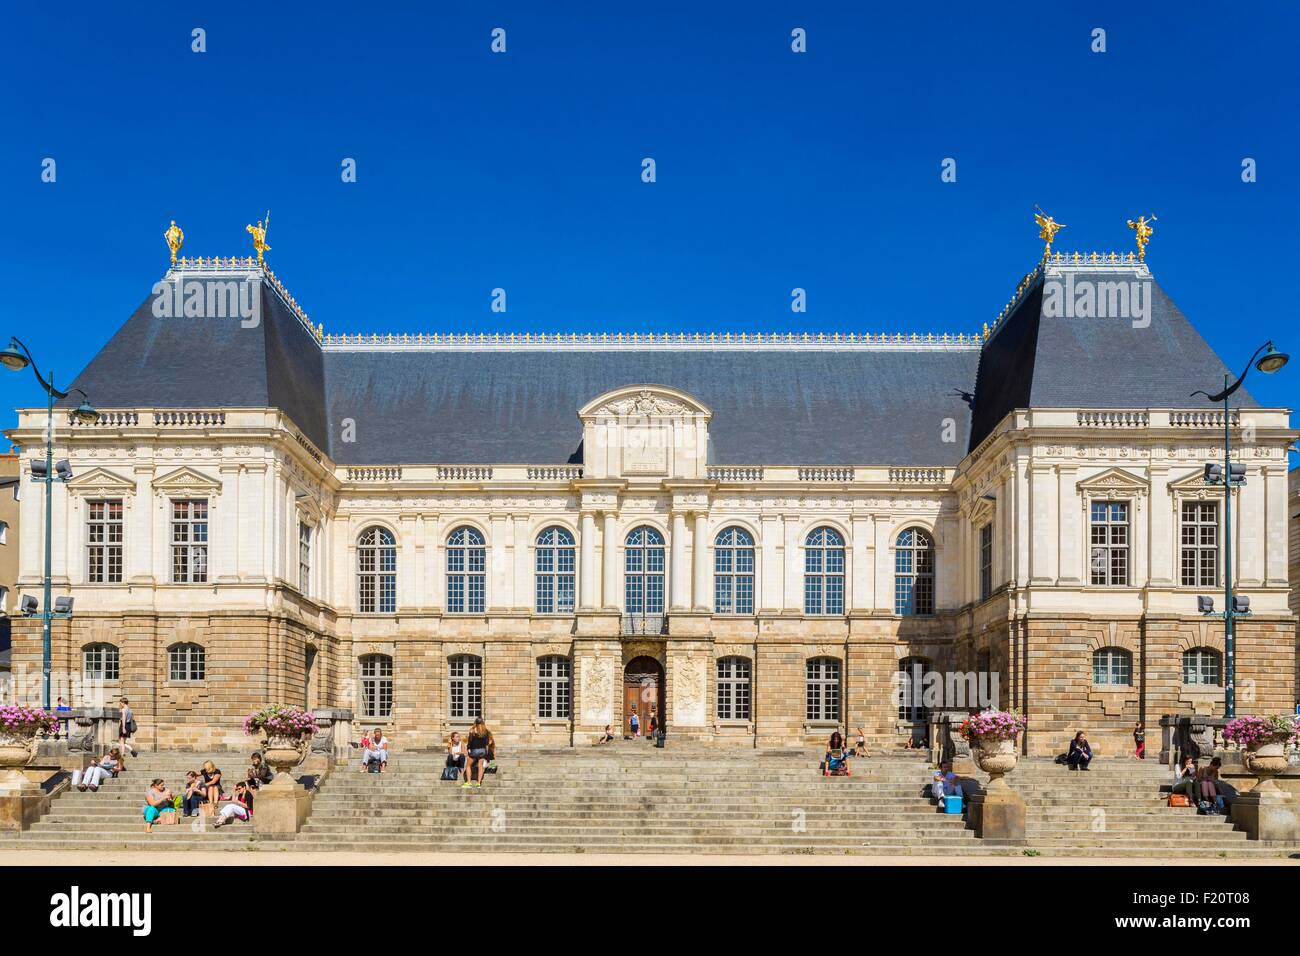 France, Ille et Vilaine, Rennes, Brittany Palace of Parliament (17th century) designed by architects Germain Gaultier - Stock Image